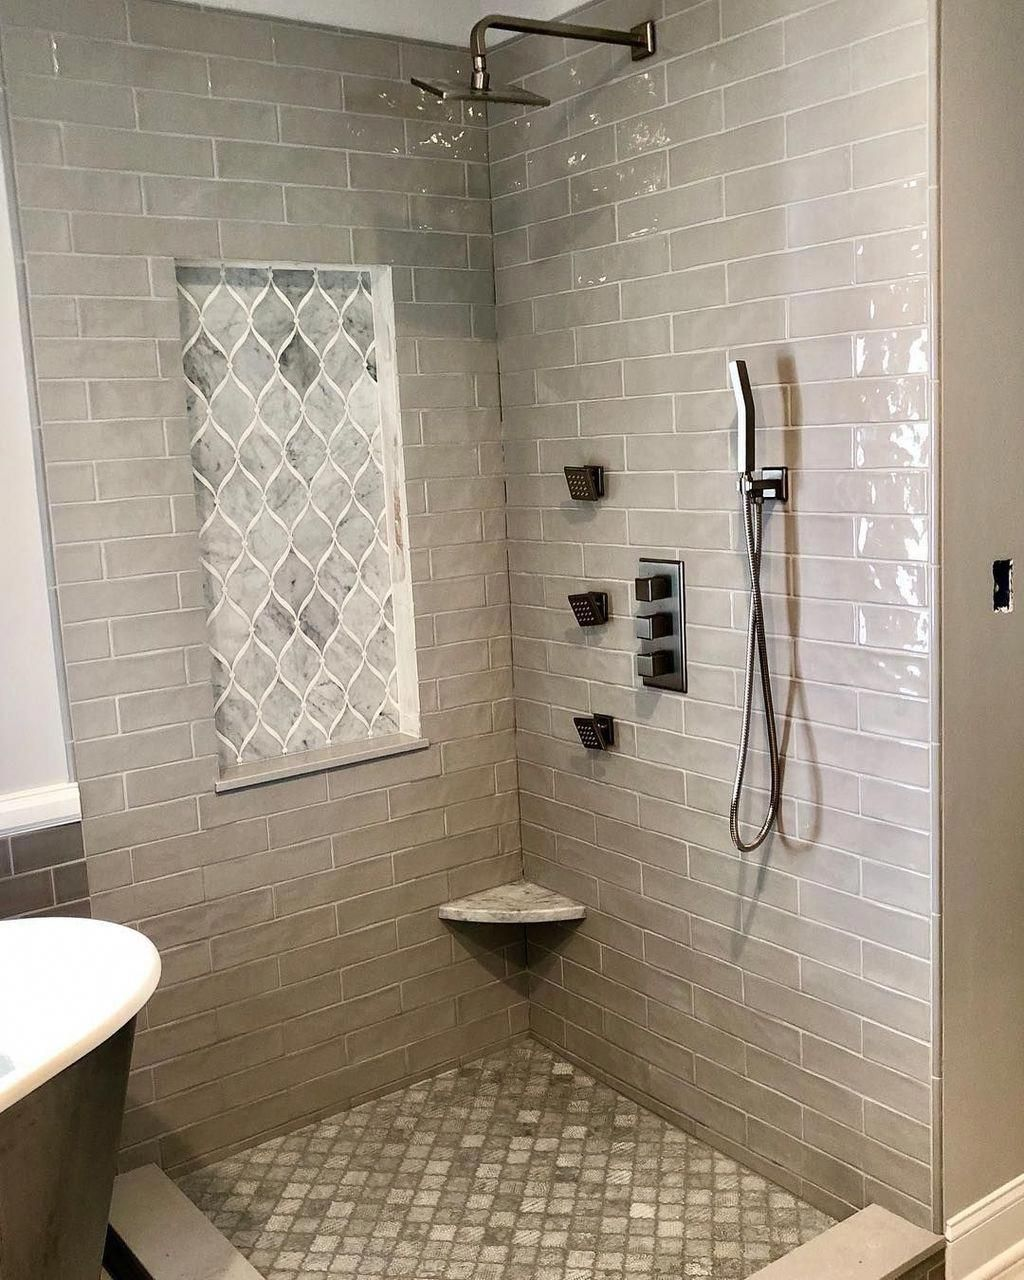 Painting Your Entire Bathroom One Light And Strong Color Yes Ceiling And Floorings Consisted Of Can Do Mar In 2020 Bathroom Shower Tile Shower Tile Pretty Bathrooms